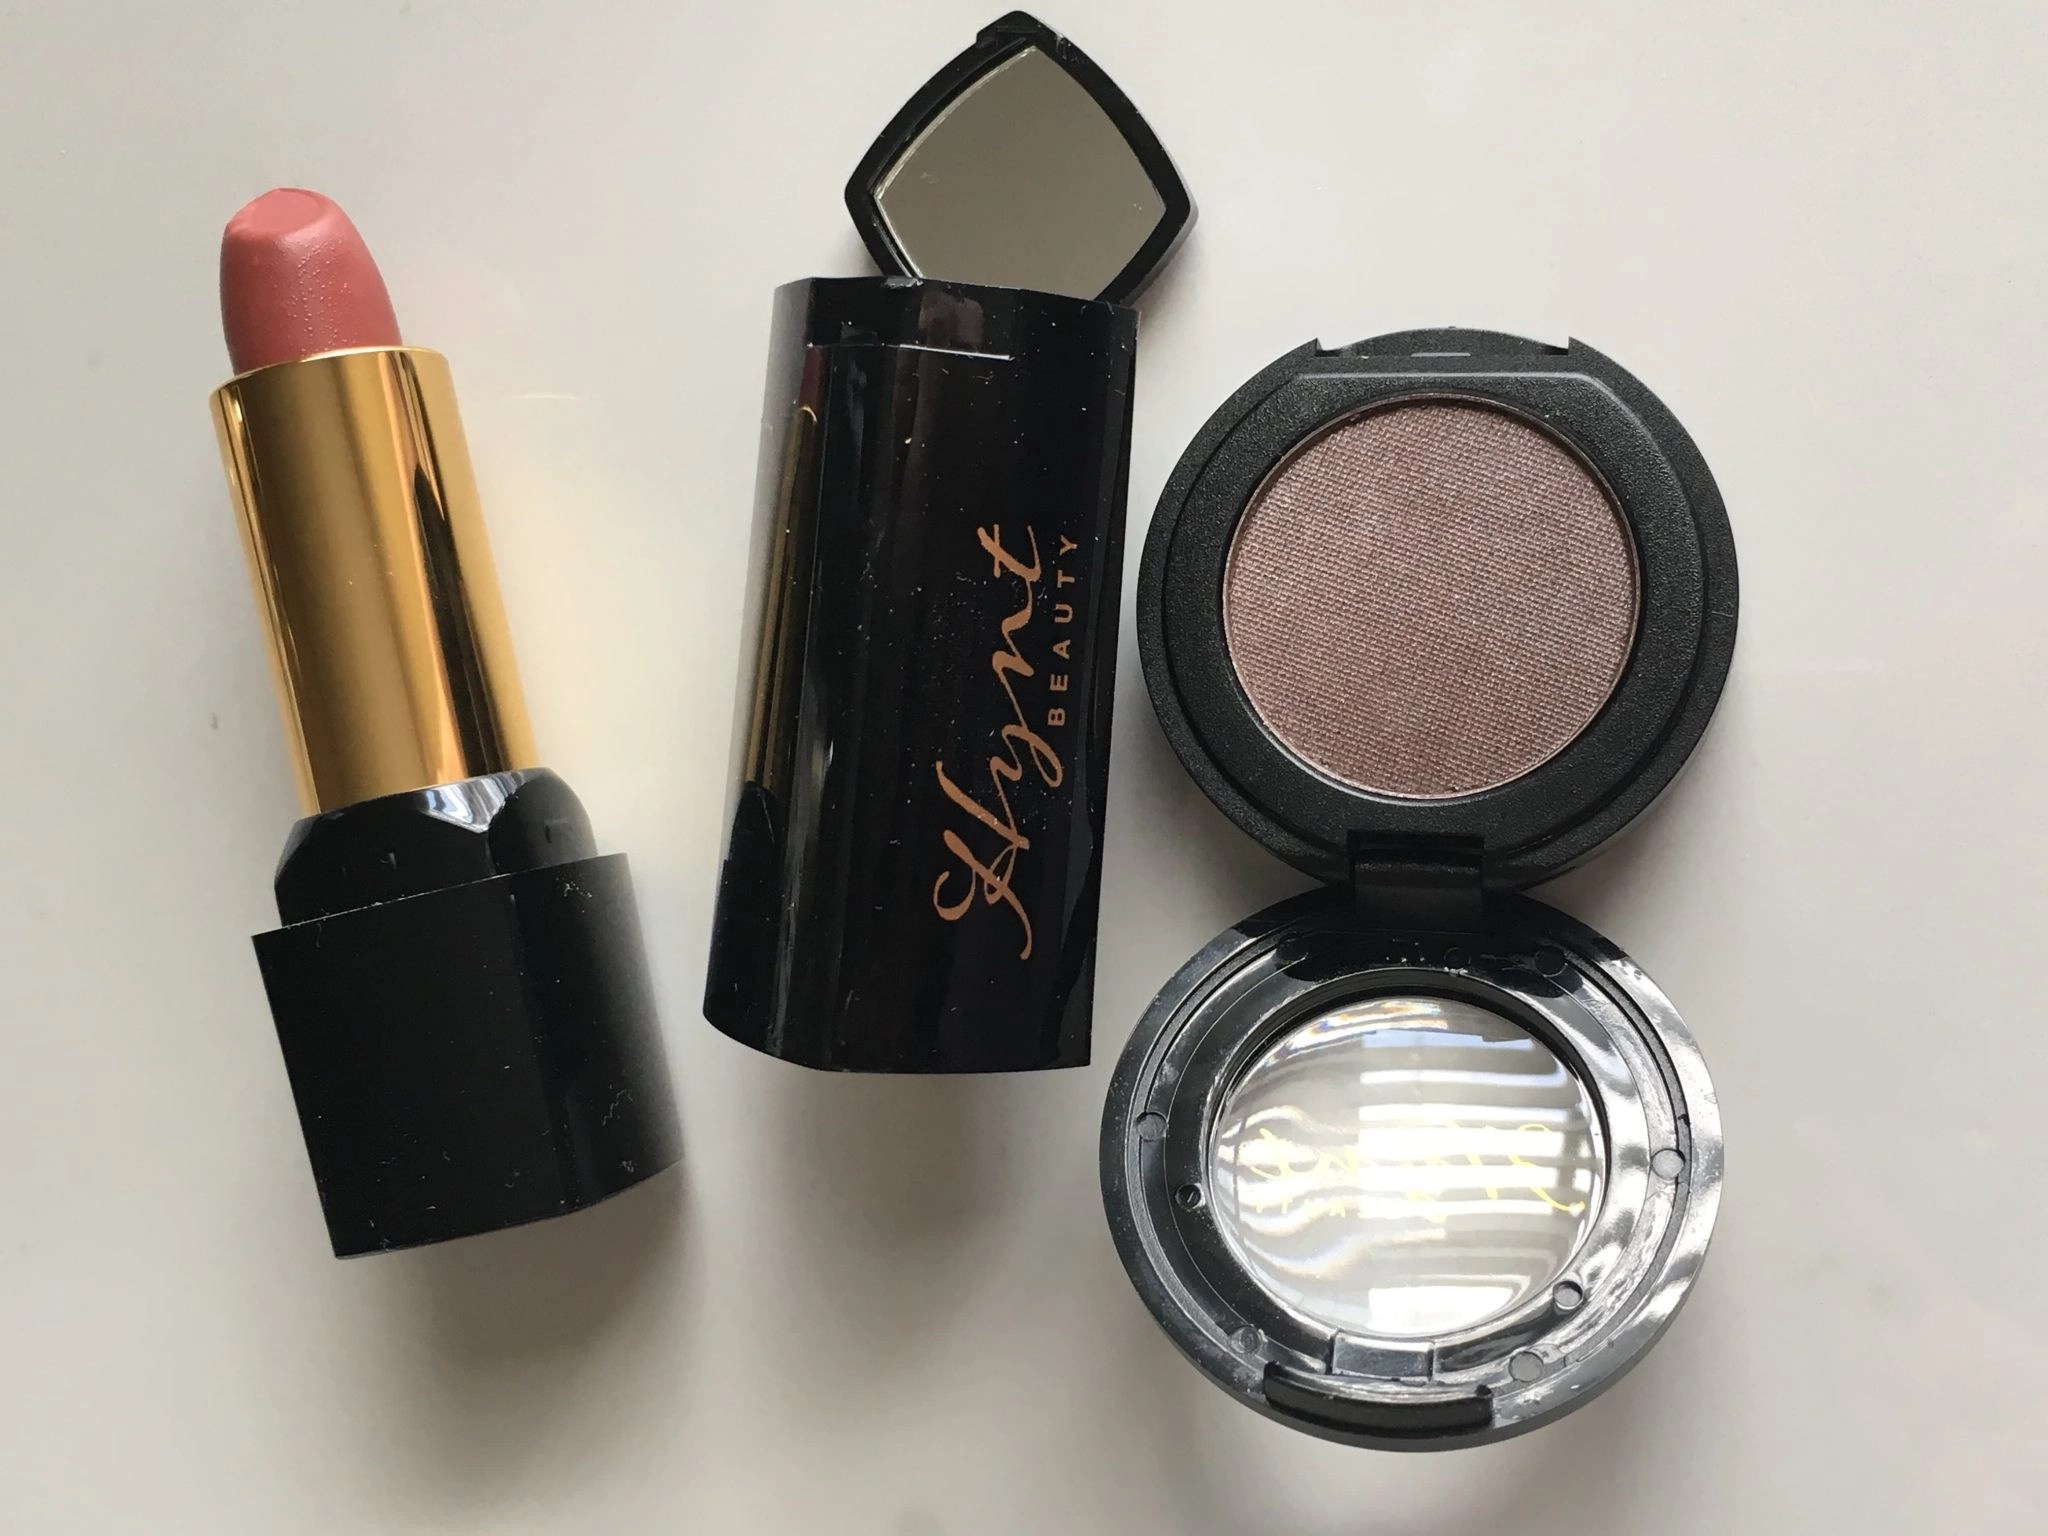 Hynt Beauty Lipstick and Eye Shadow